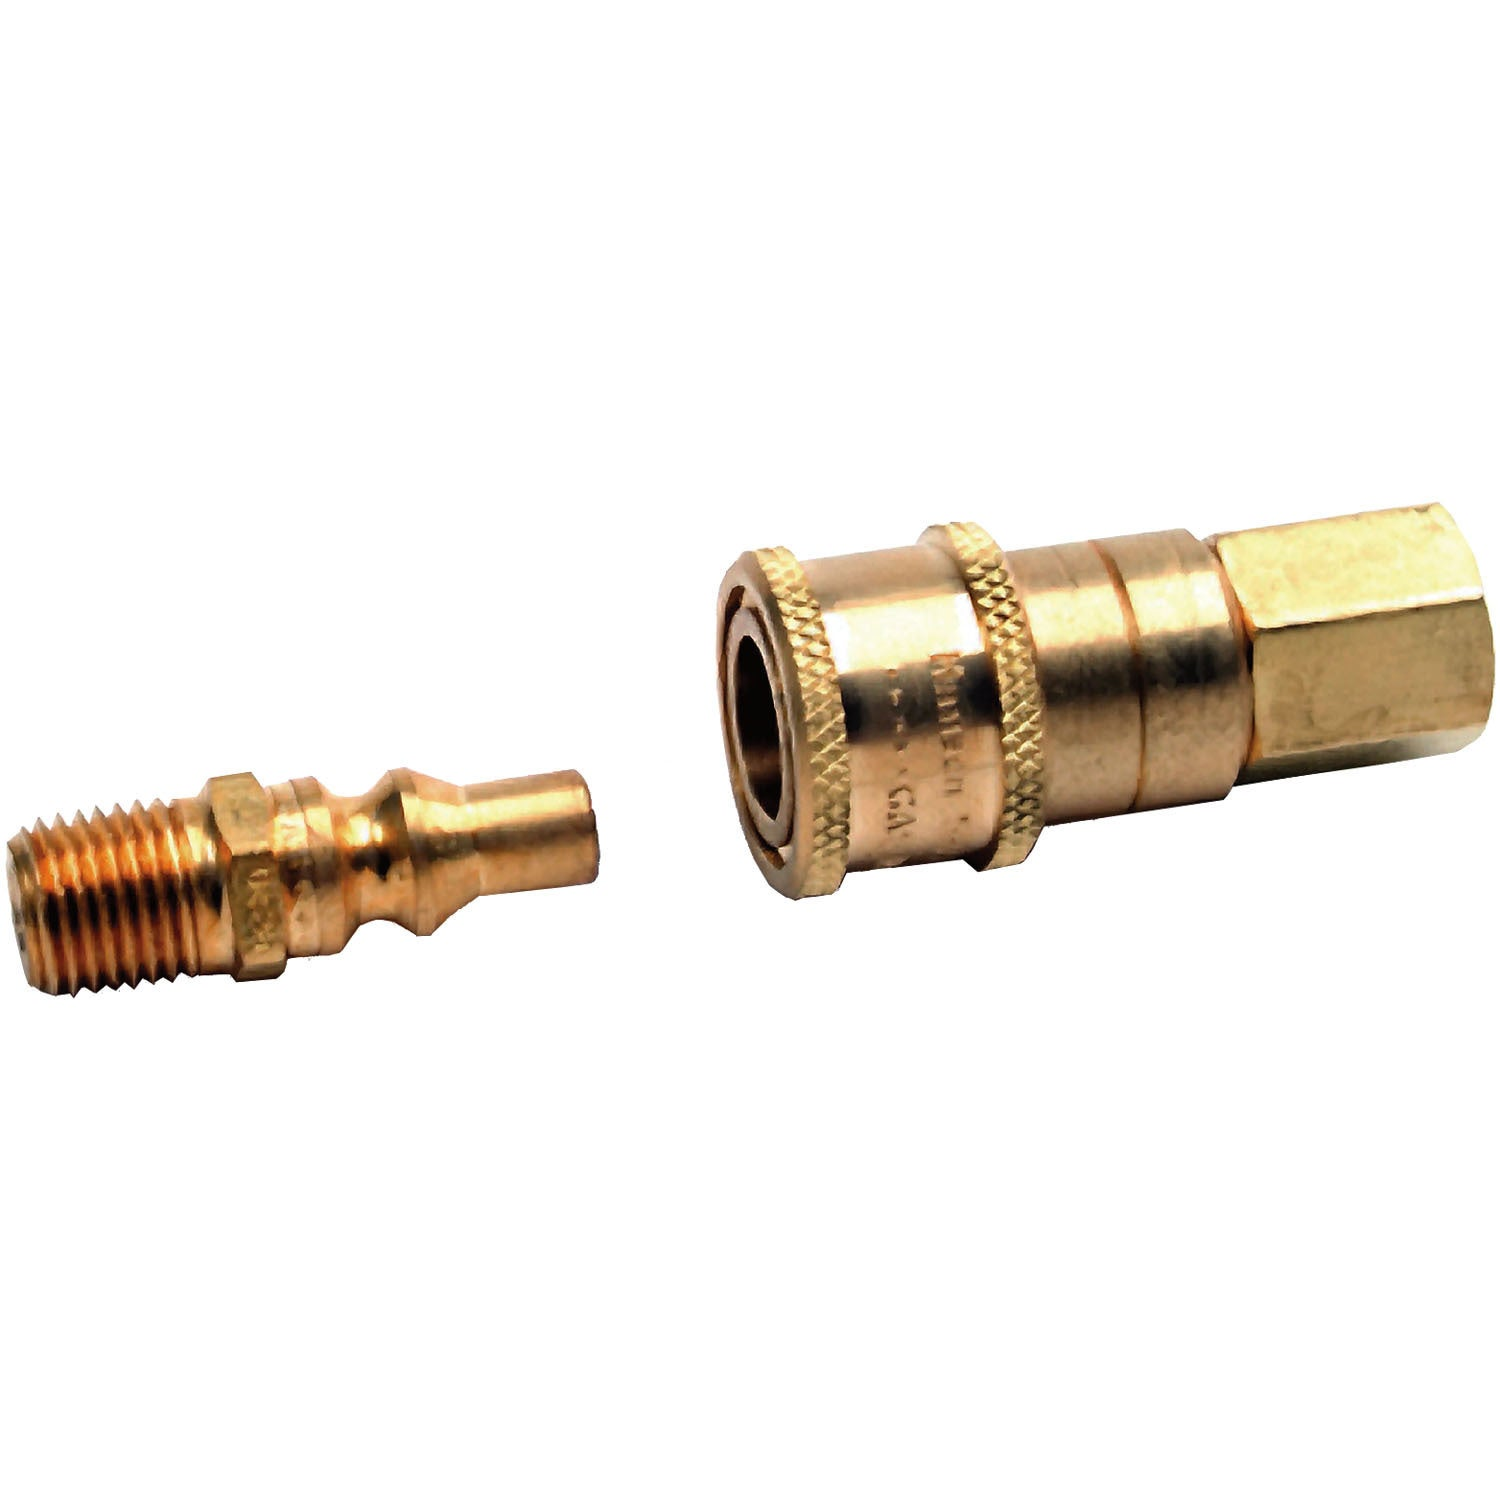 "Mr Heater F276190 1/4"" Propane Or Natural Gas Connector (..."